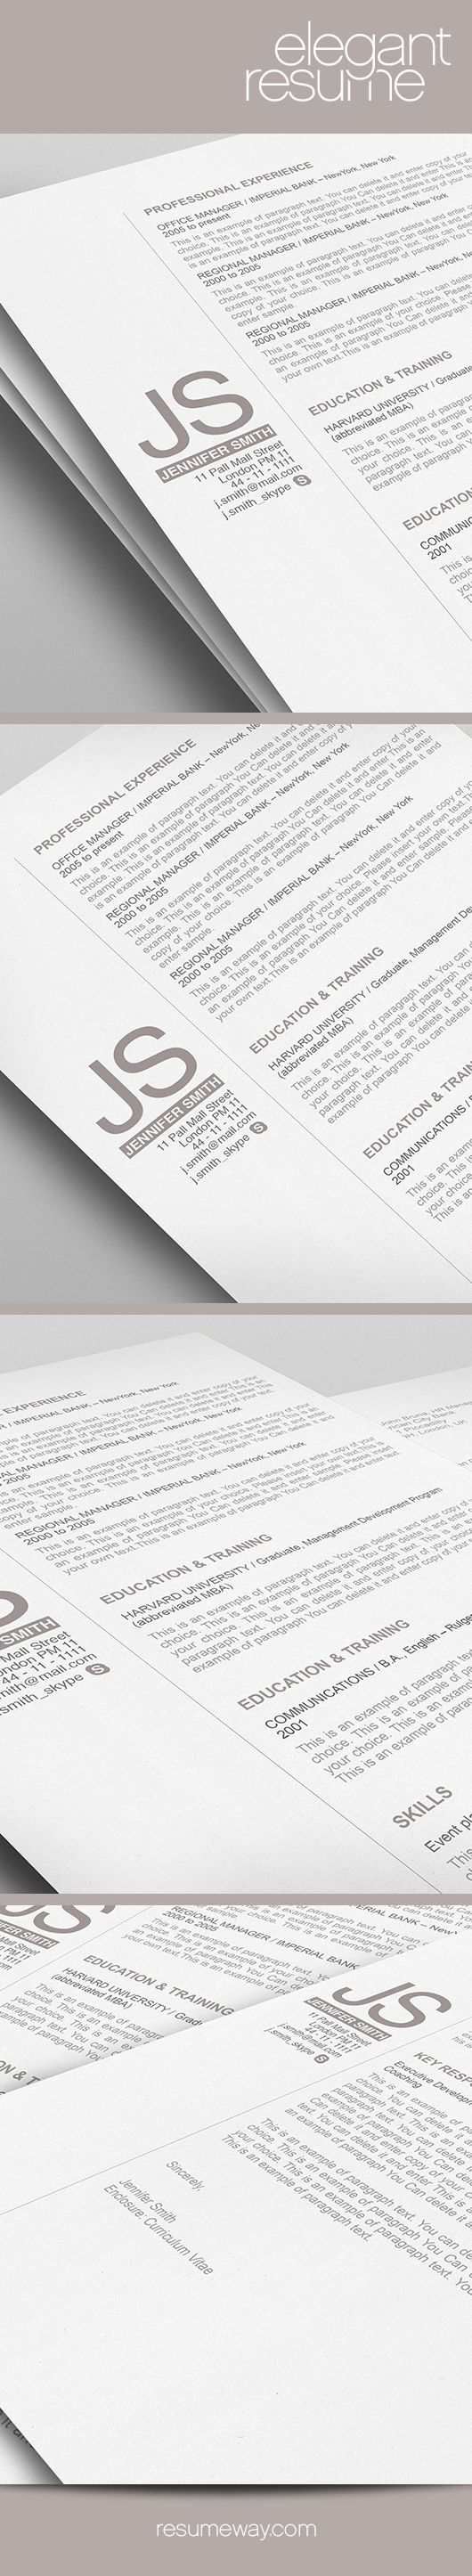 elegant resume template - 110530